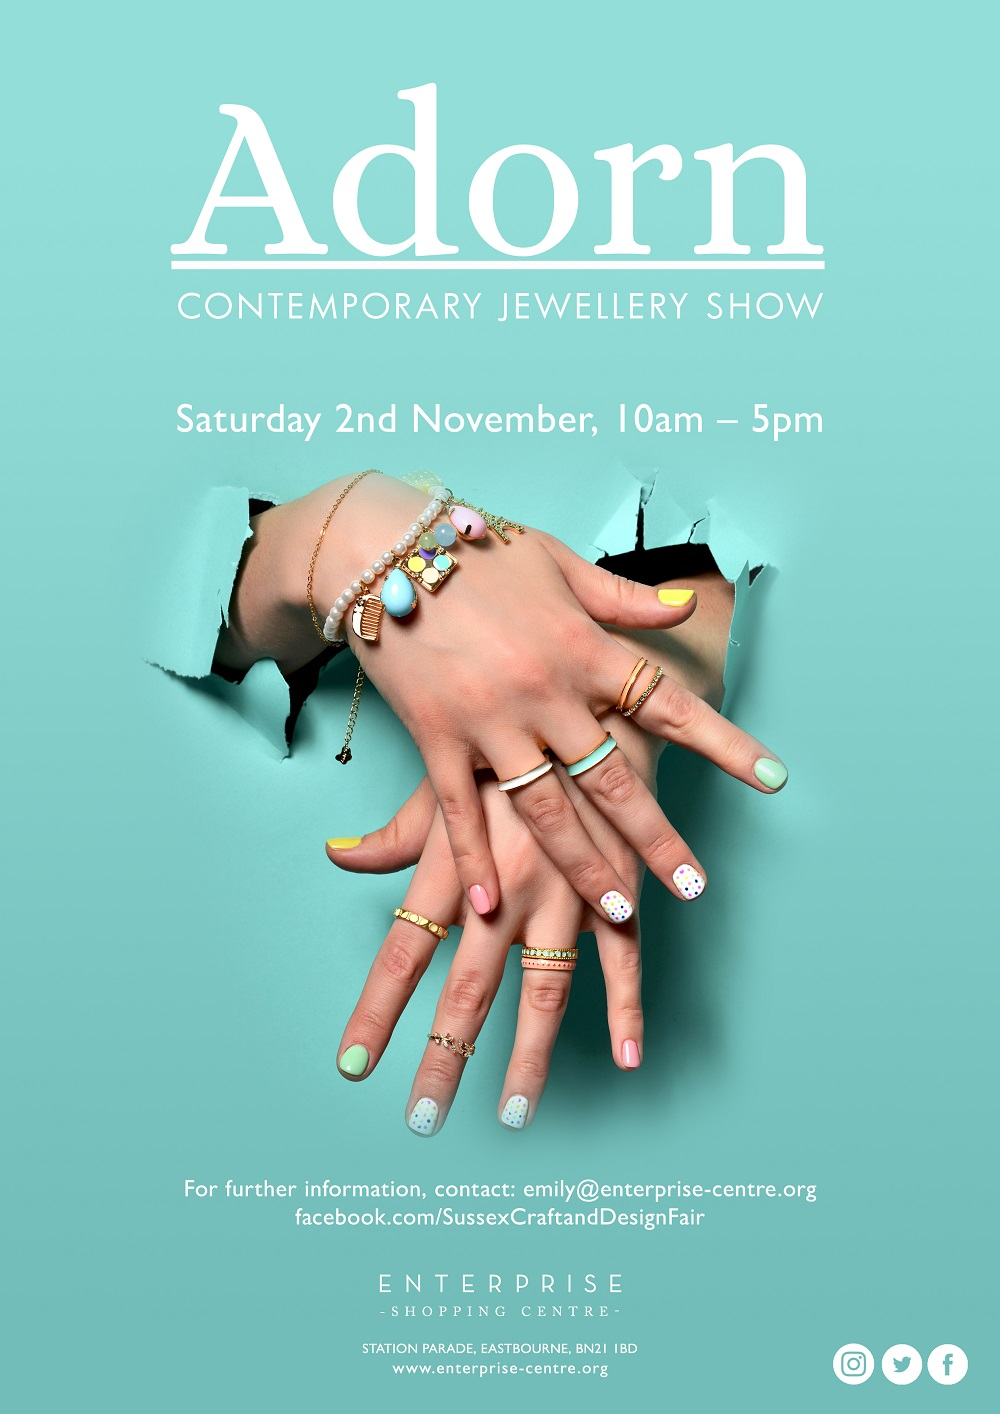 Contemporary Jewellery Show this November